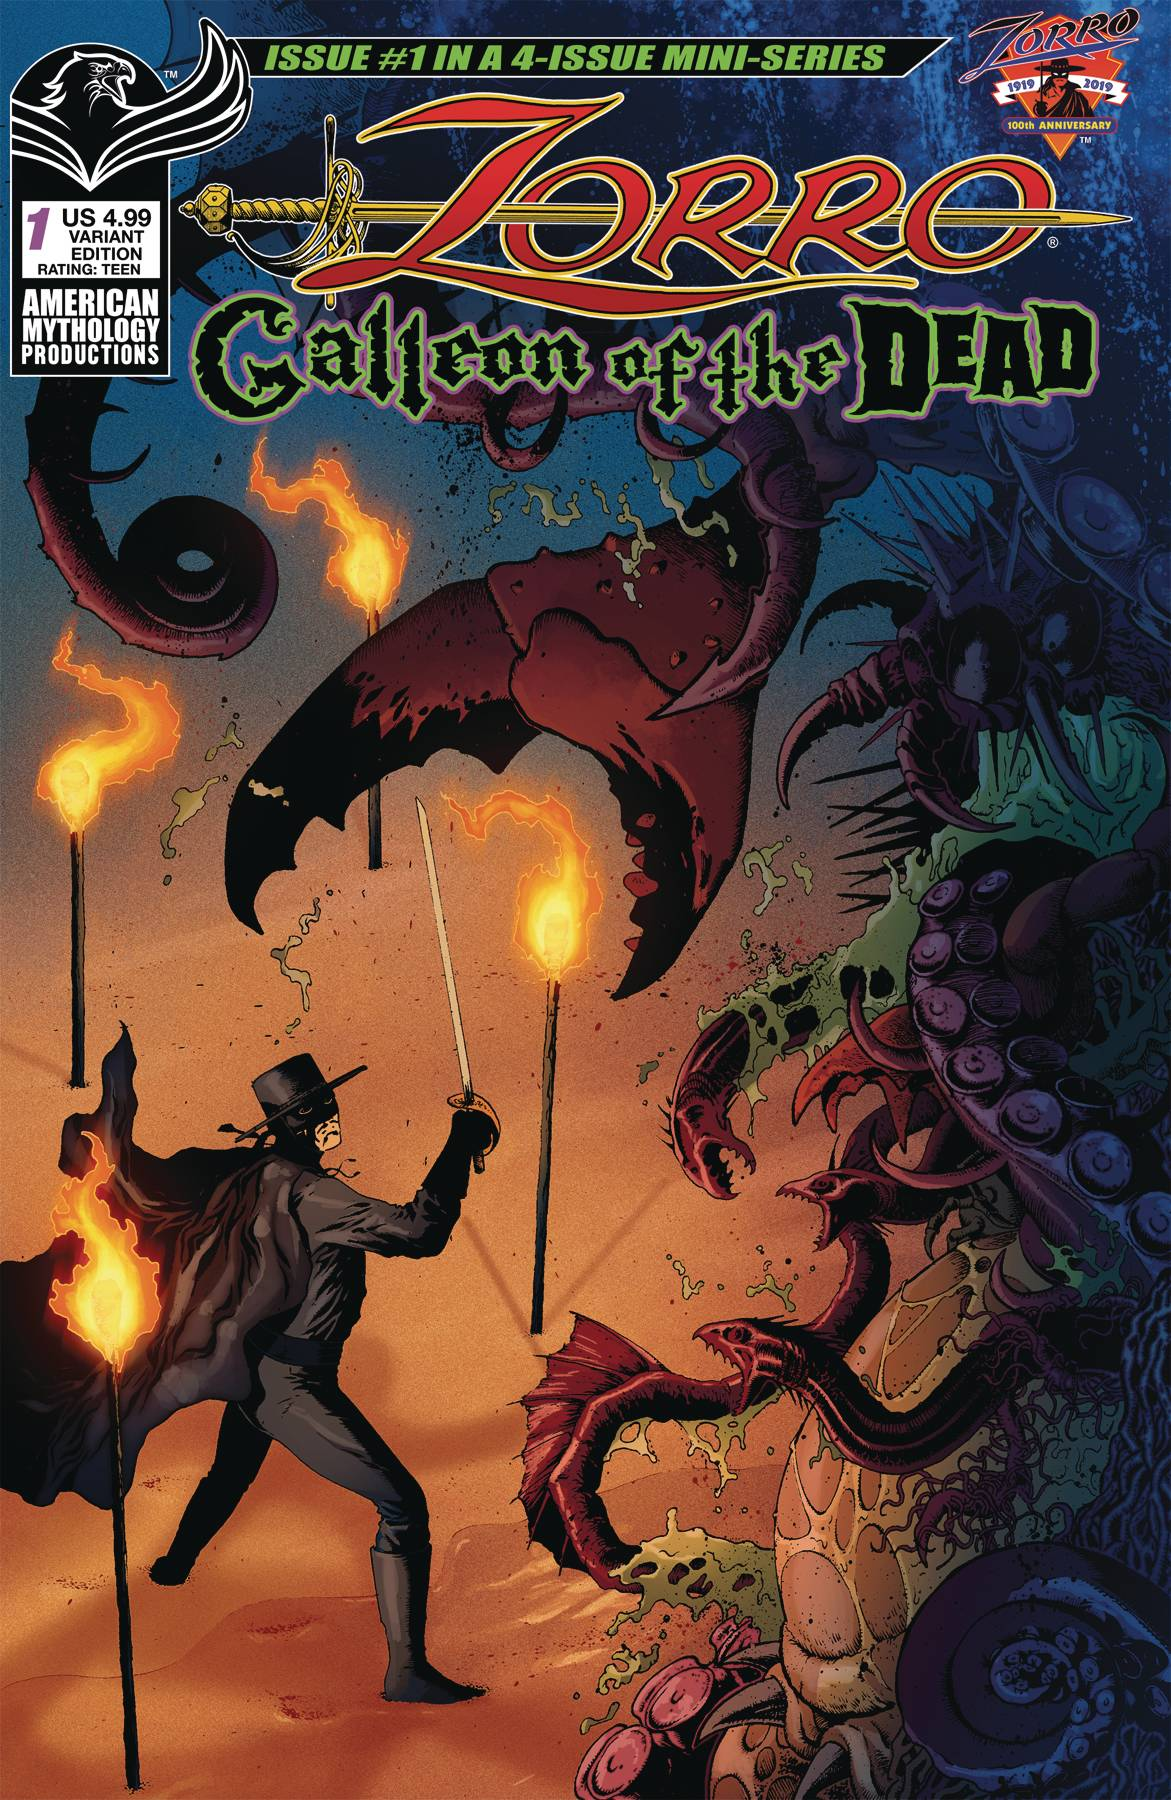 ZORRO GALLEON OF DEAD #1 CVR B WOLFER (RES)